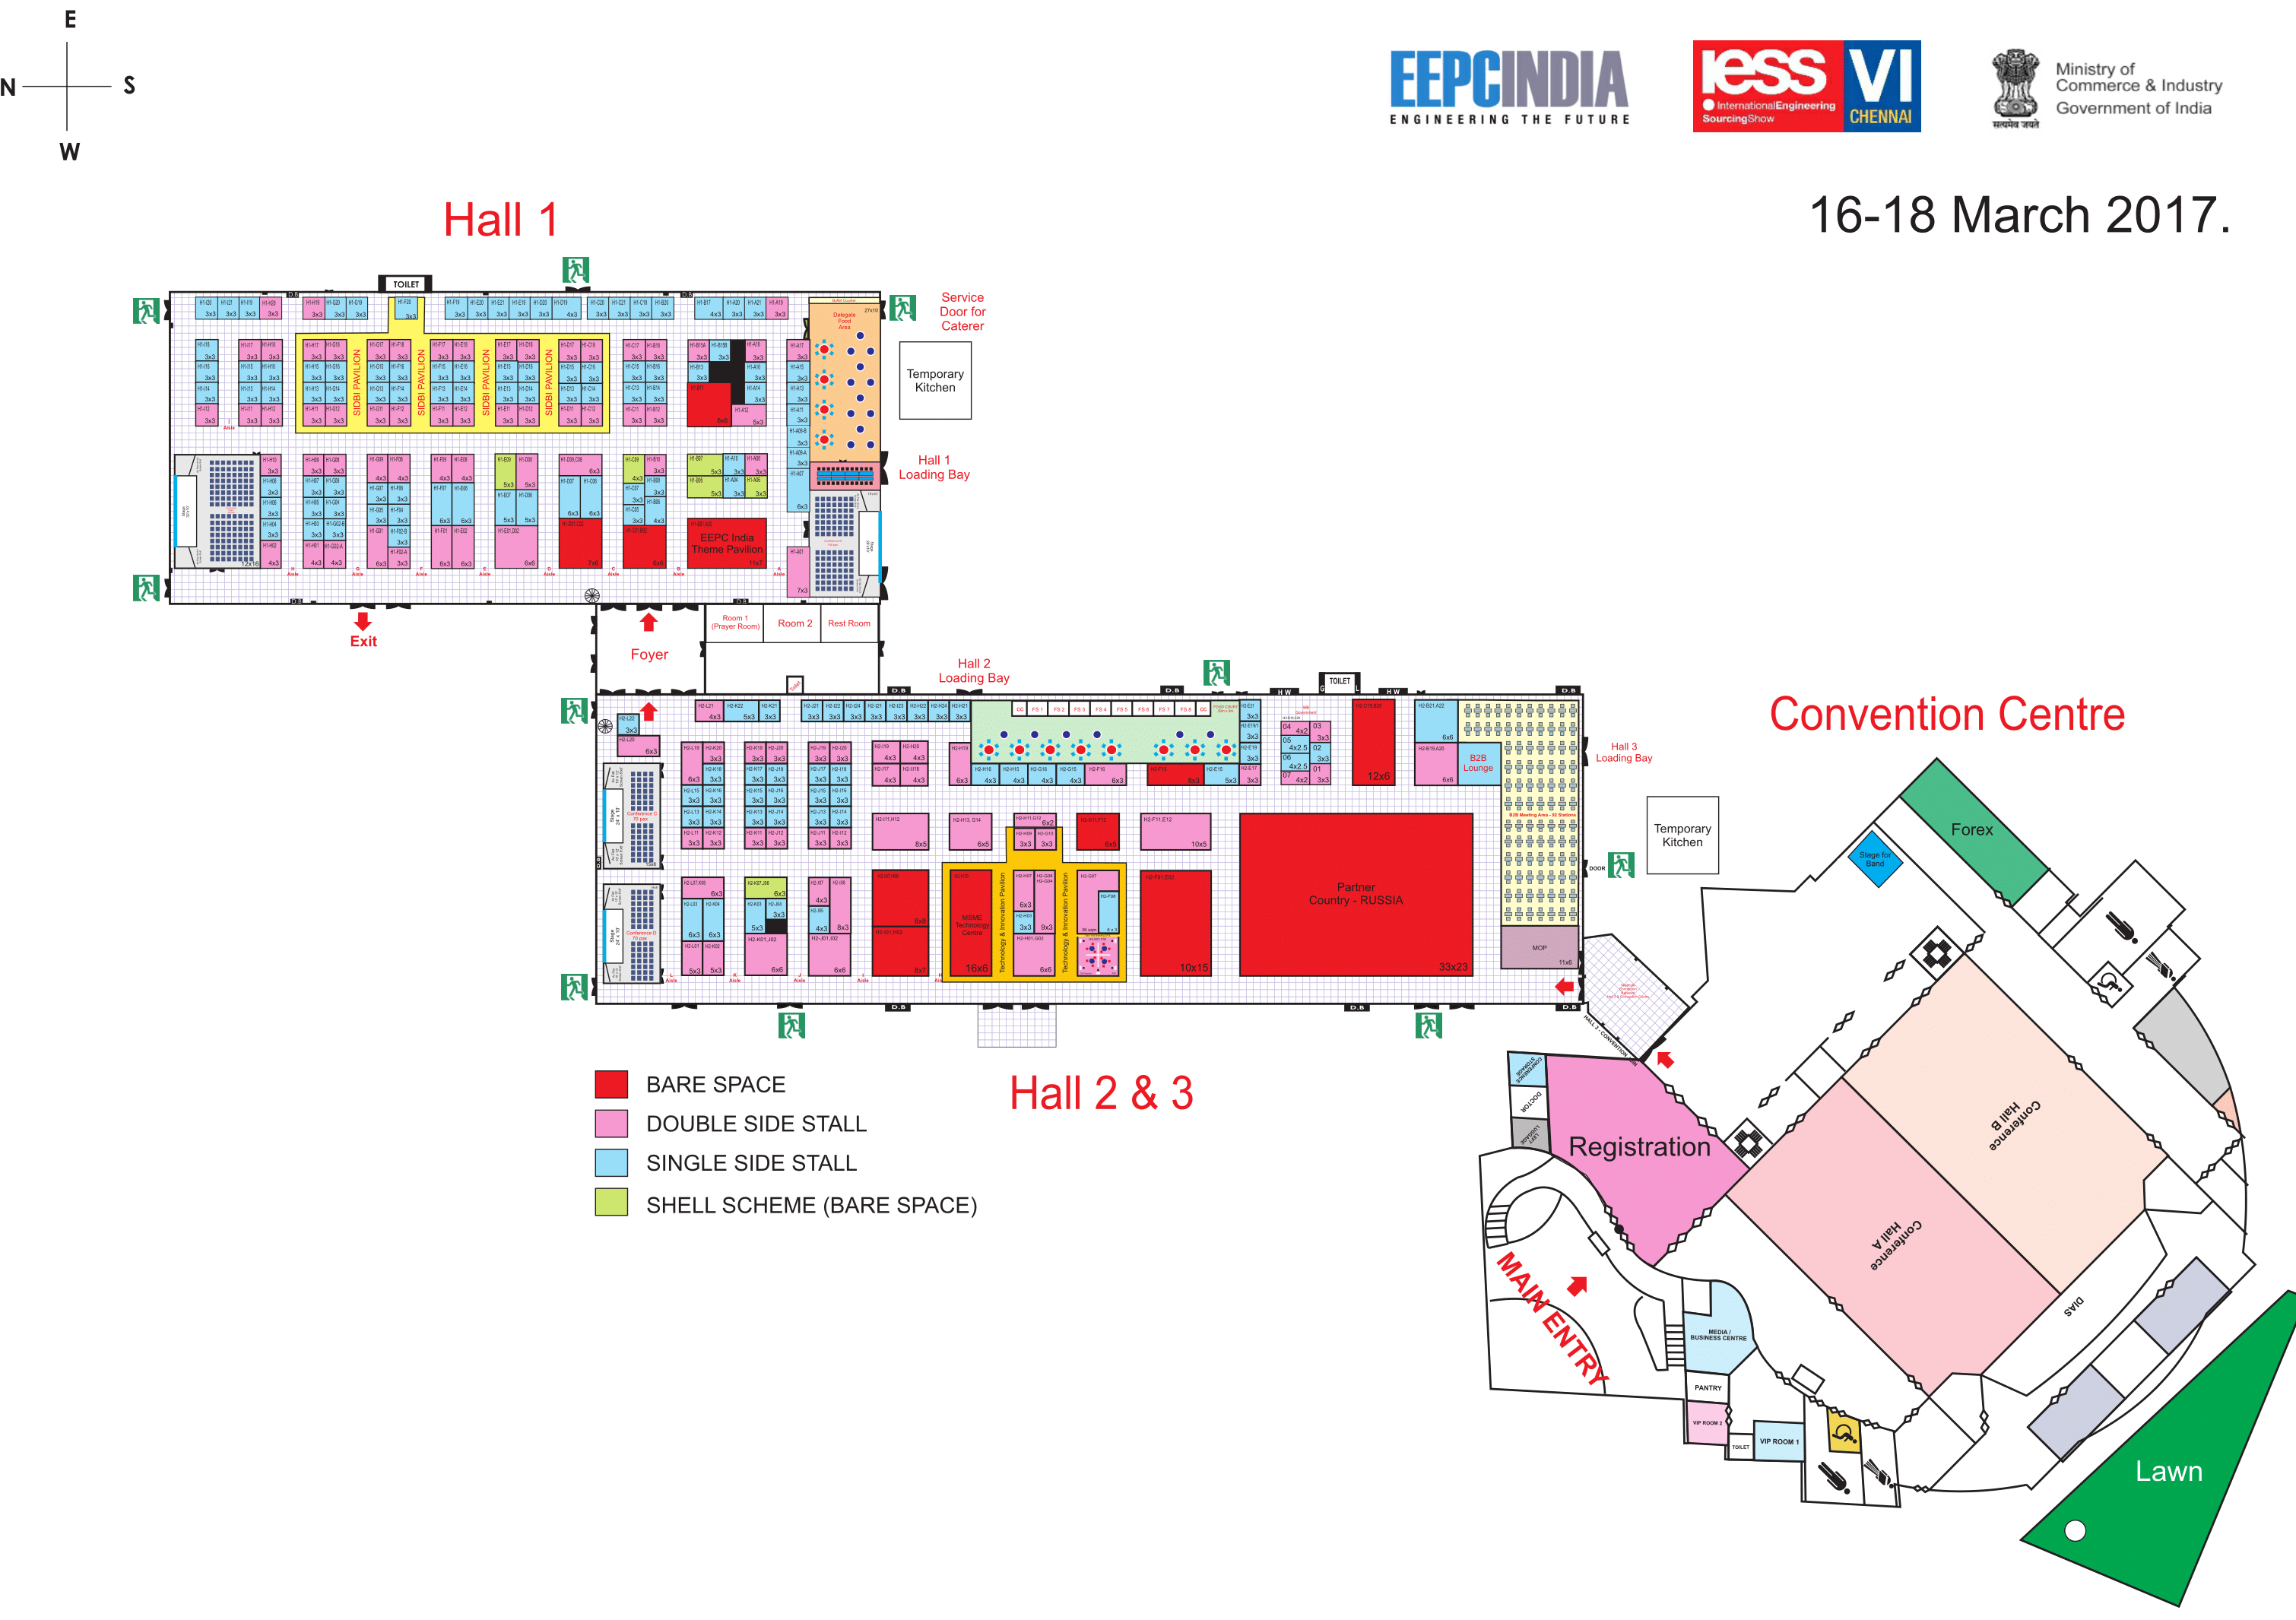 IESS VI Venue Layout